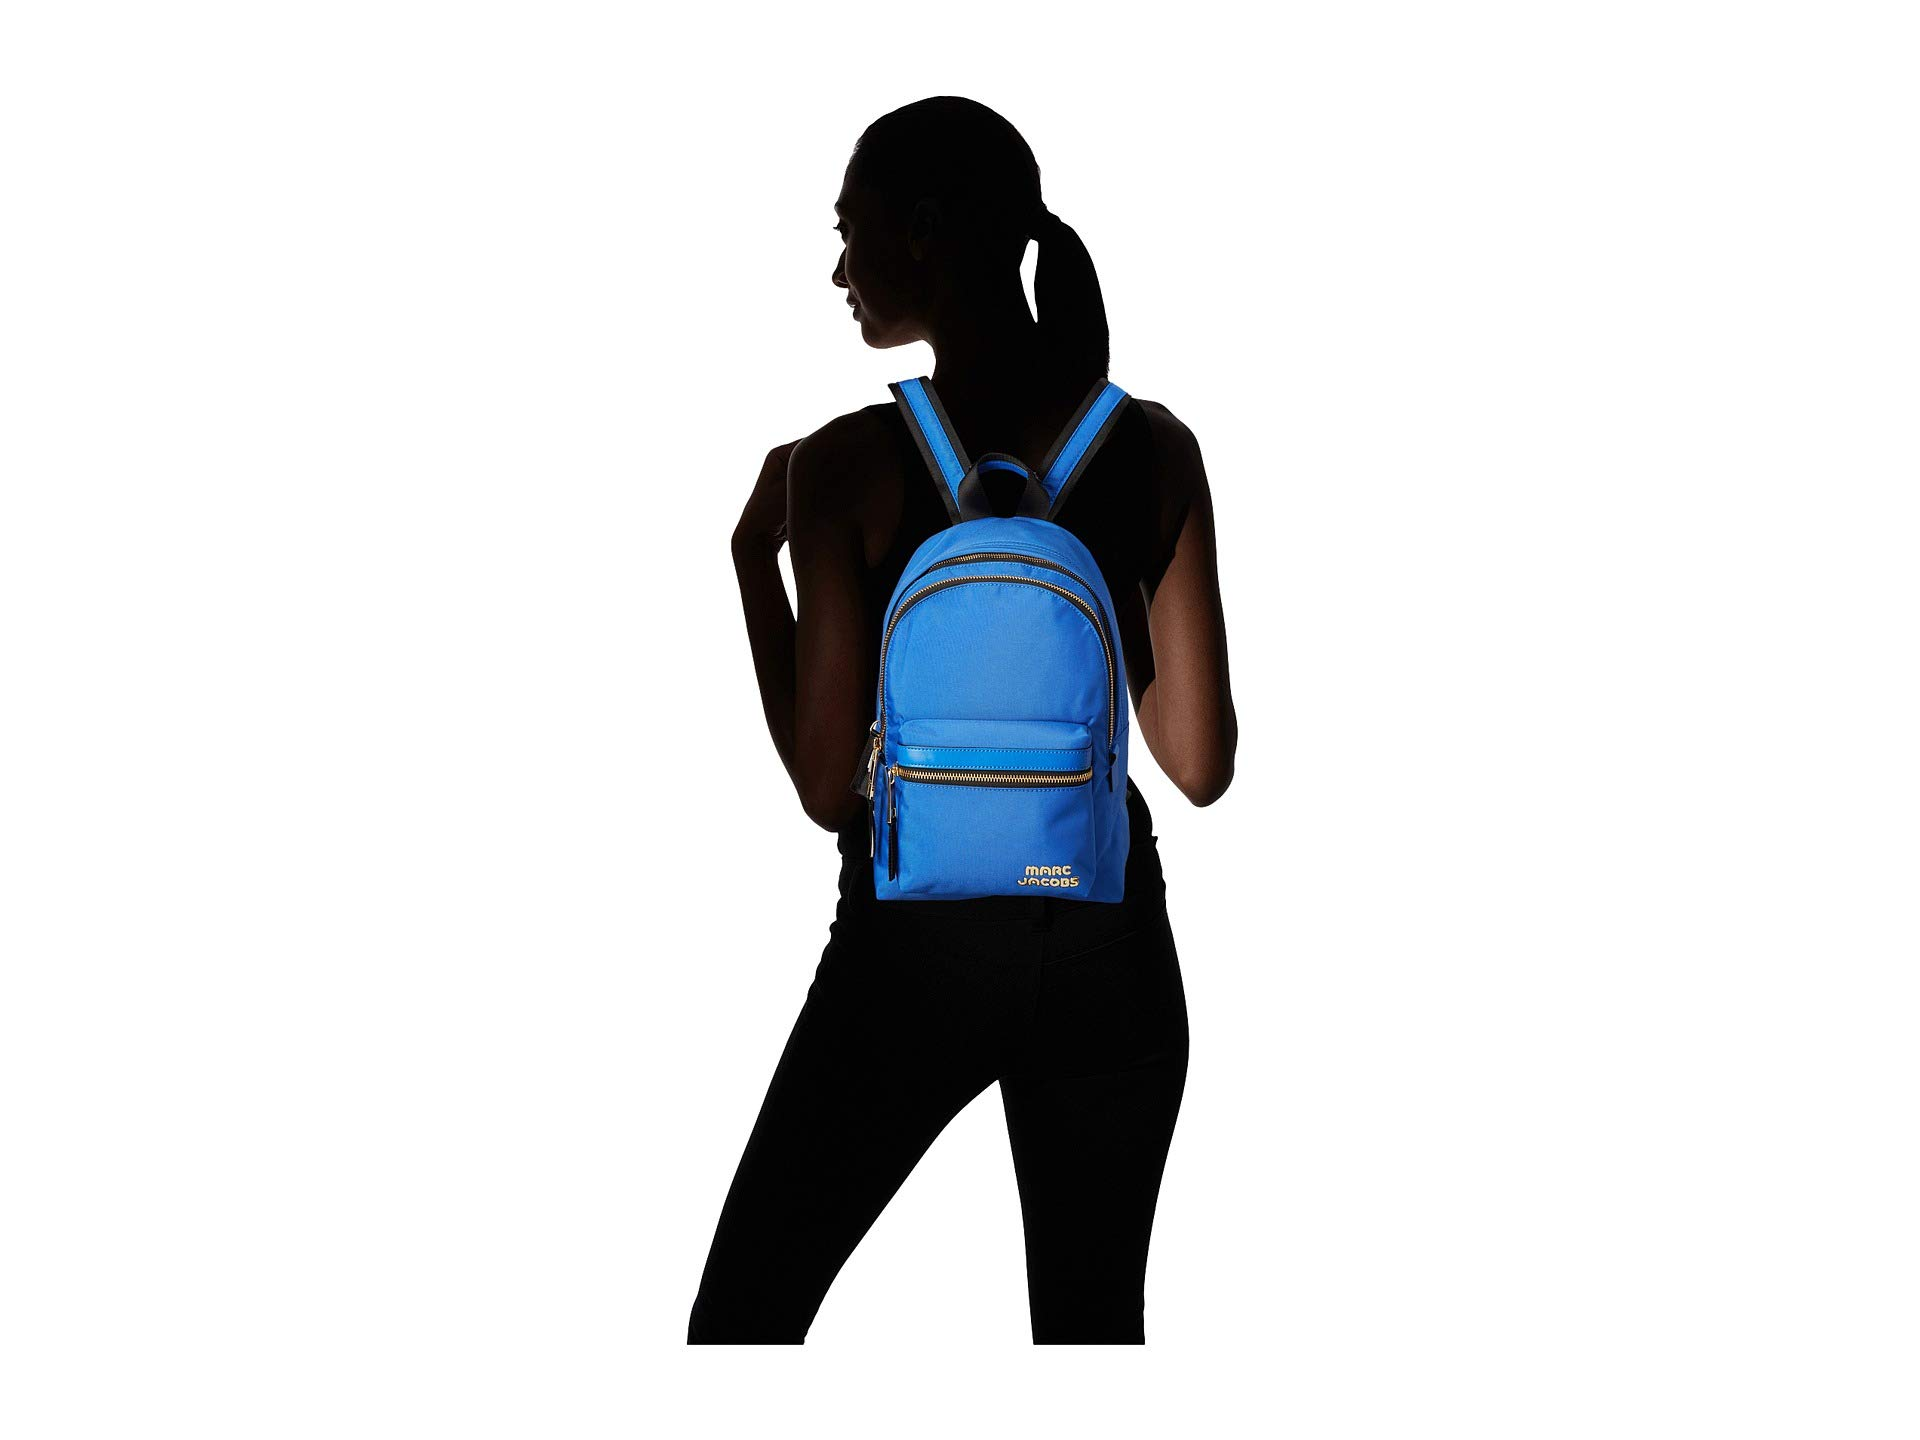 Blue Jacobs Medium Marc Dazzling Backpack Pack Trek YpqxwFT6